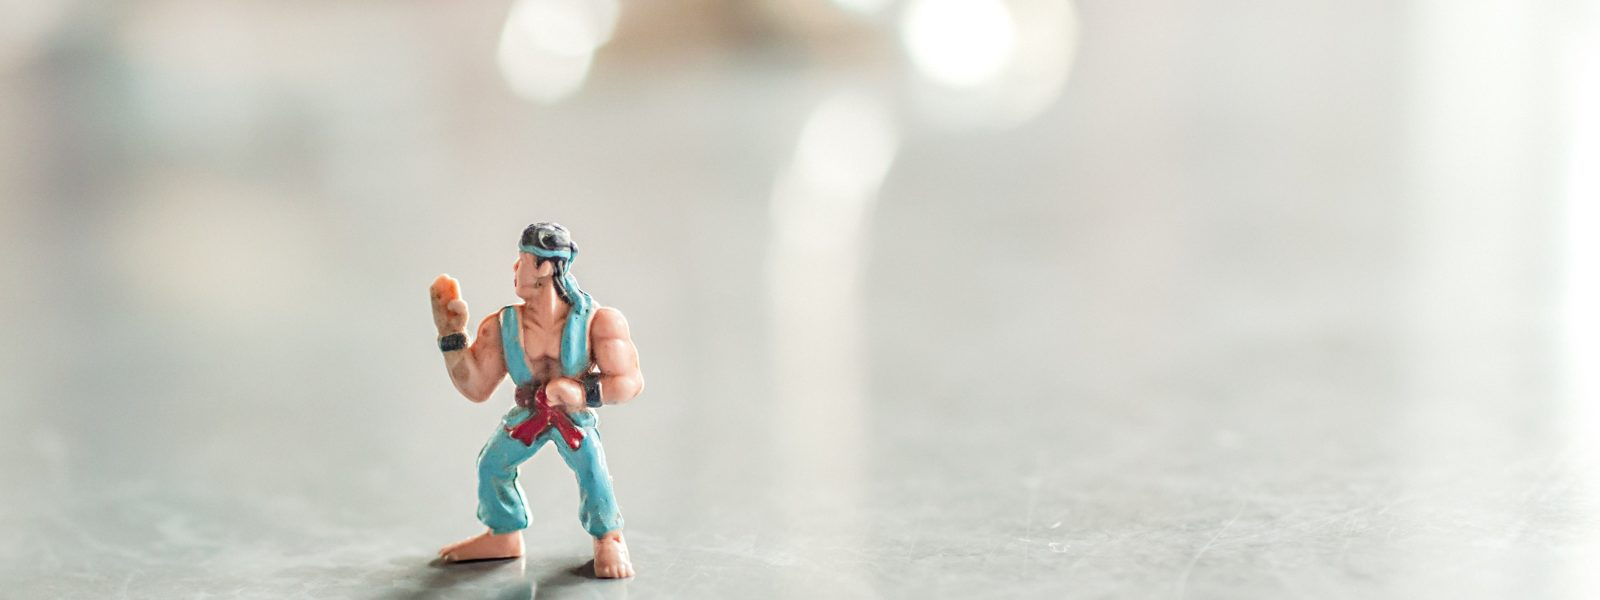 The Comma Chameleon copywriting, editing and proofreading team is ready to kick some butt, as demonstrated by this miniature toy karate man.